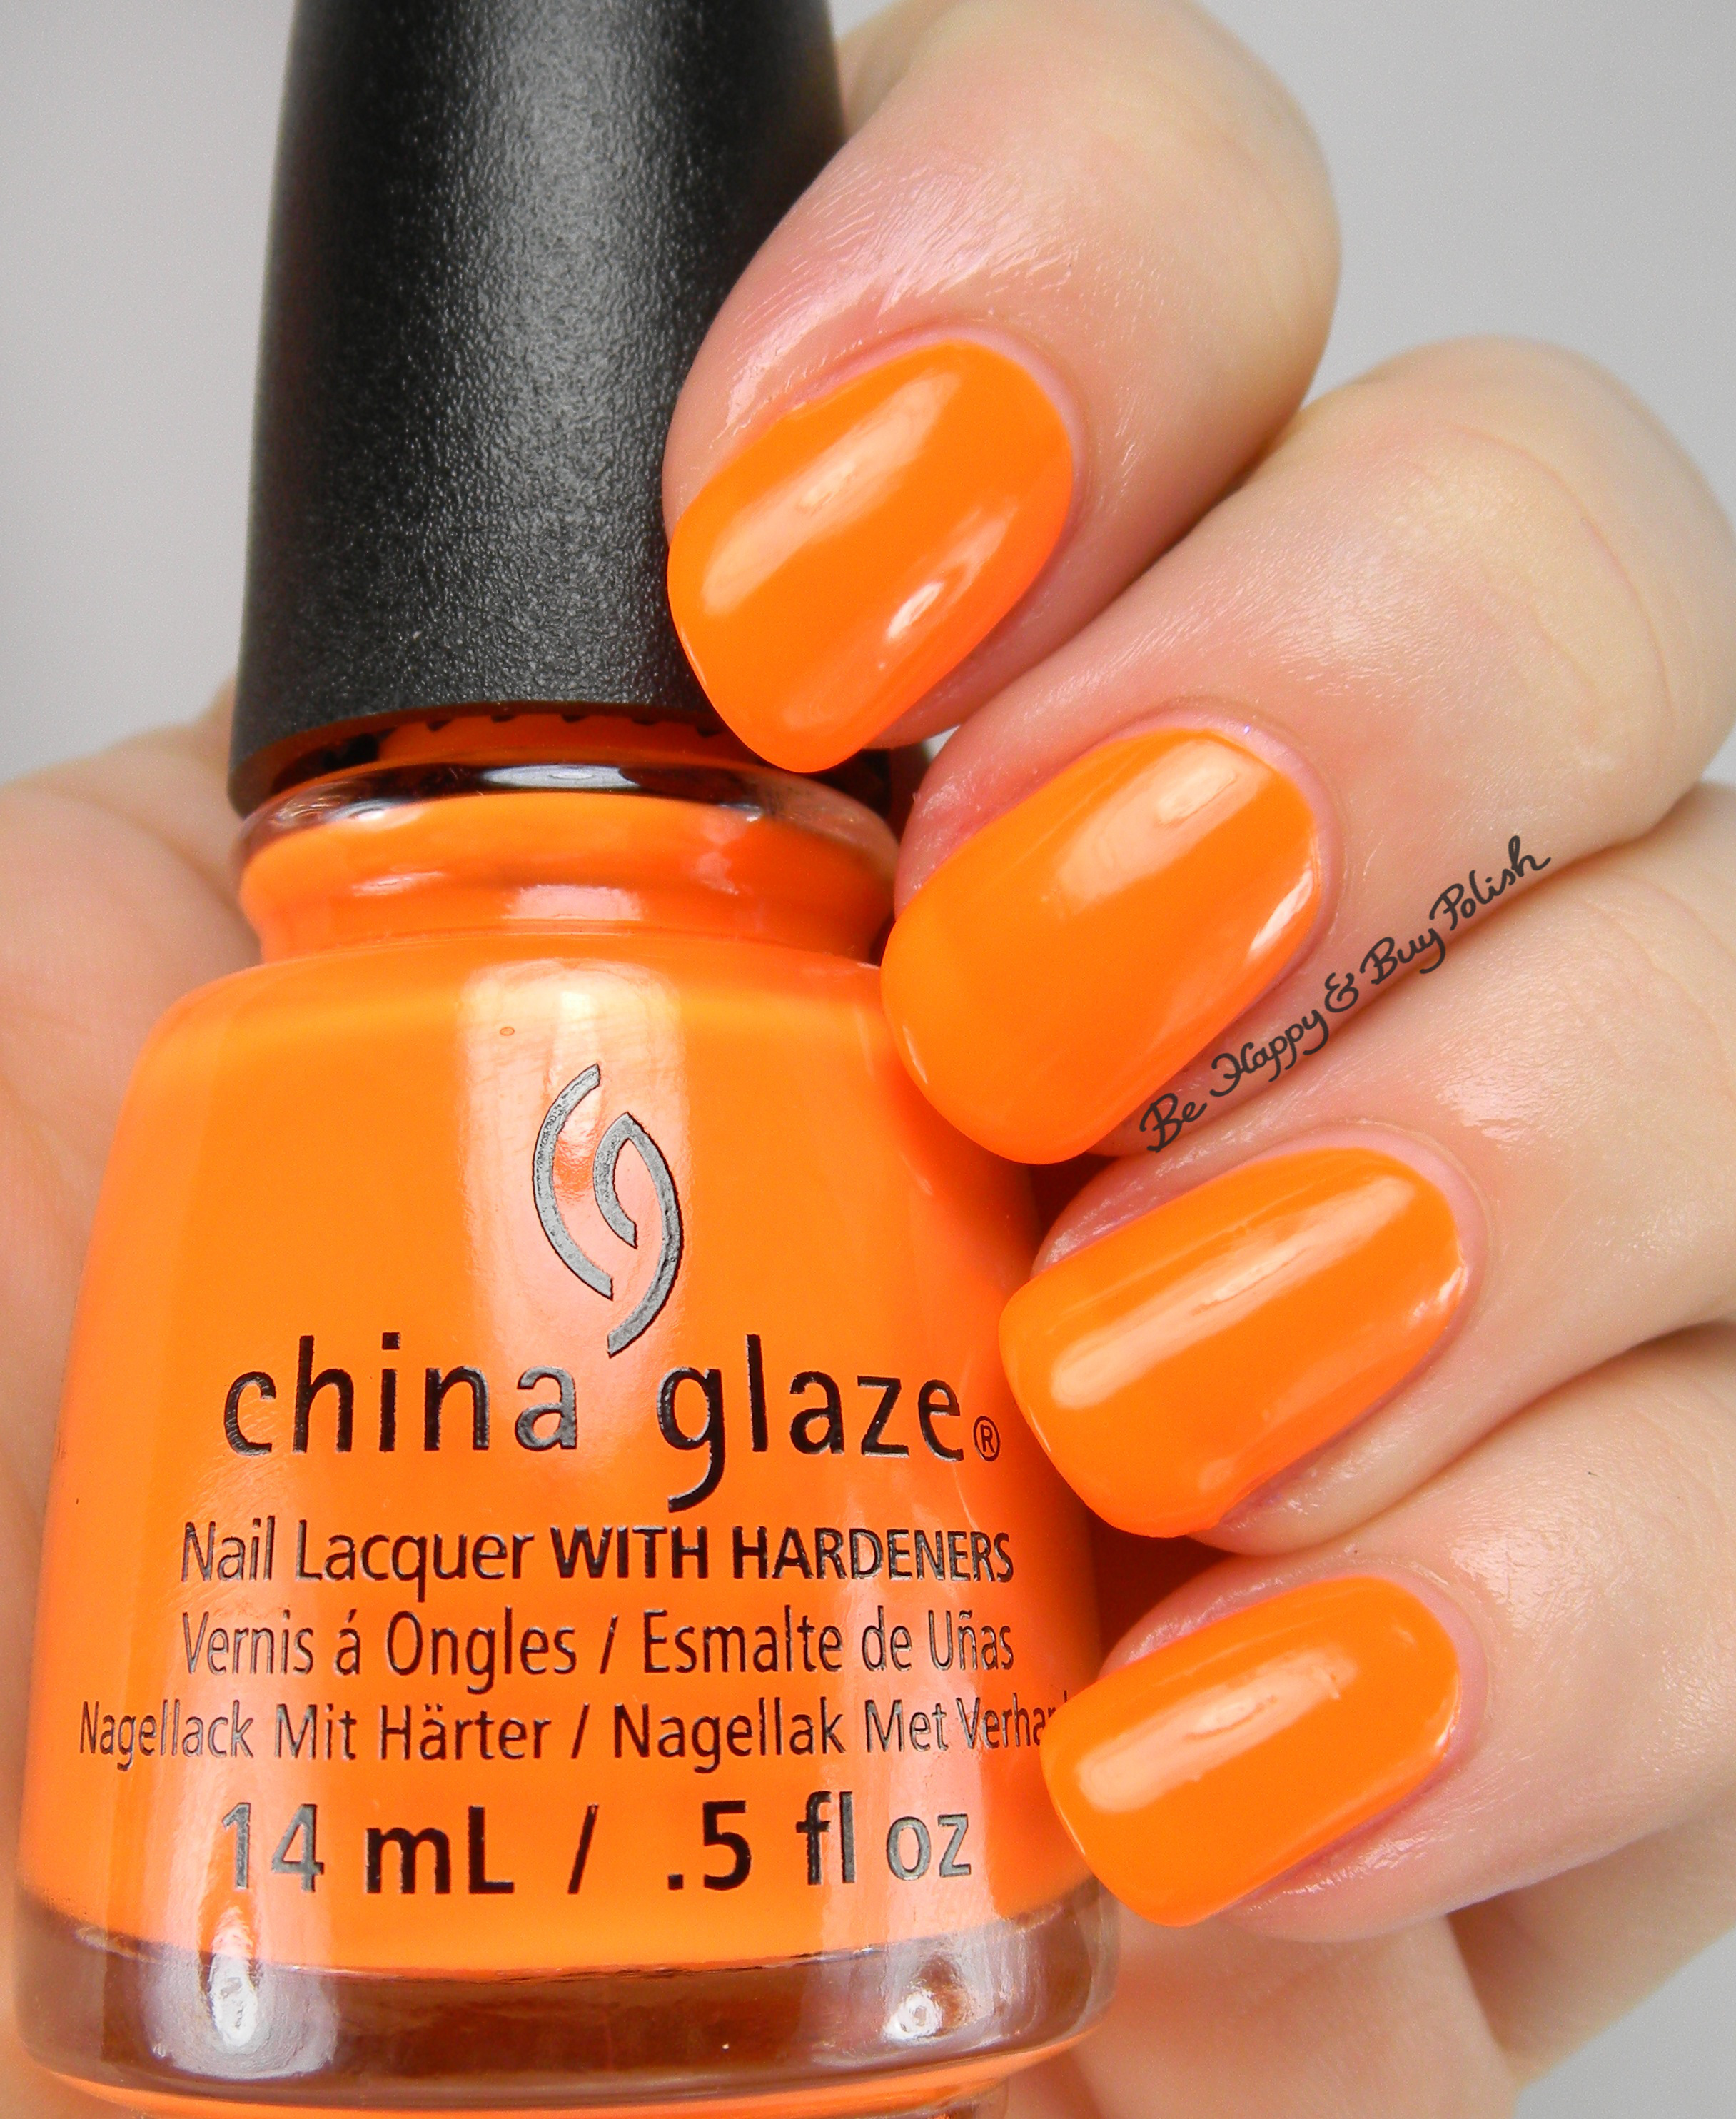 China Glaze Halloween nail polishes swatch + review [partial] | Be ...